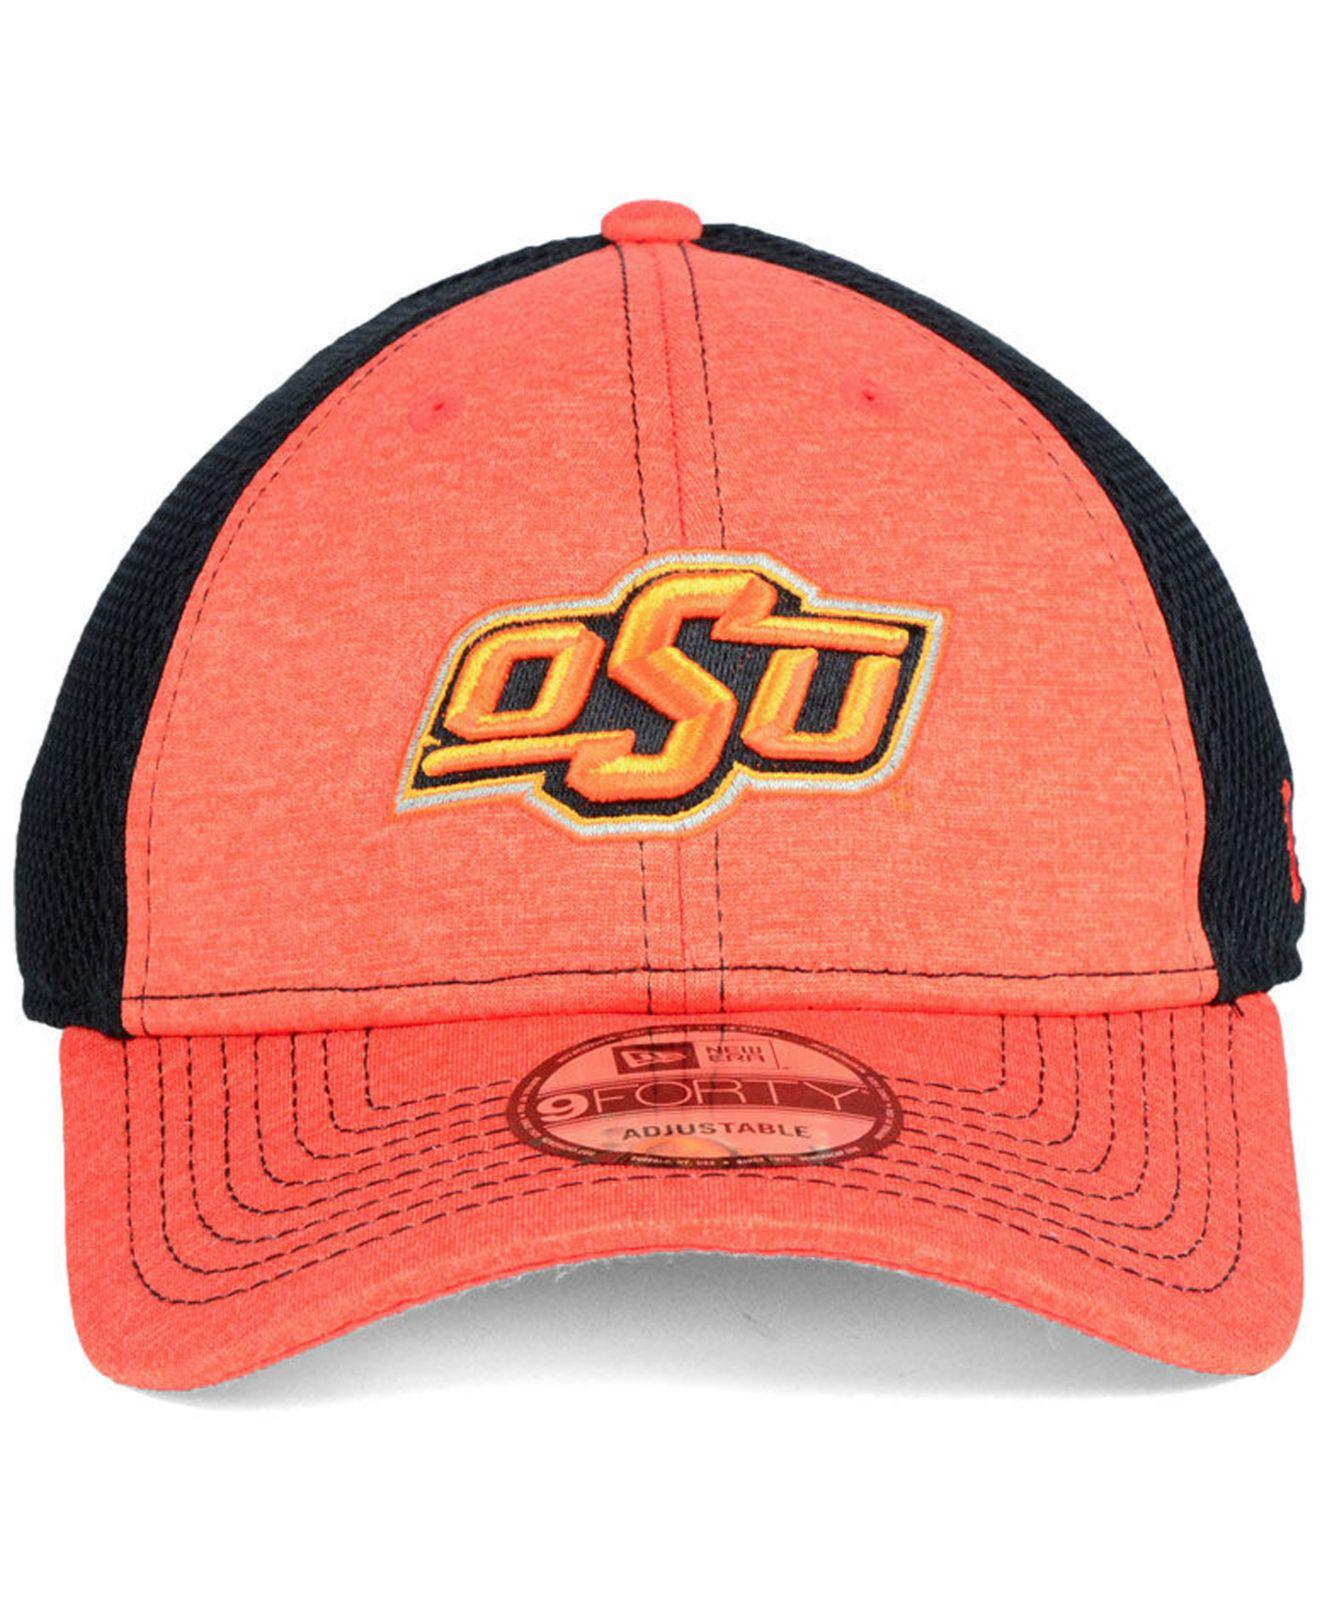 outlet store b8d66 f8cea Lyst - KTZ Oklahoma State Cowboys Shadow Turn 9forty Cap in Orange for Men